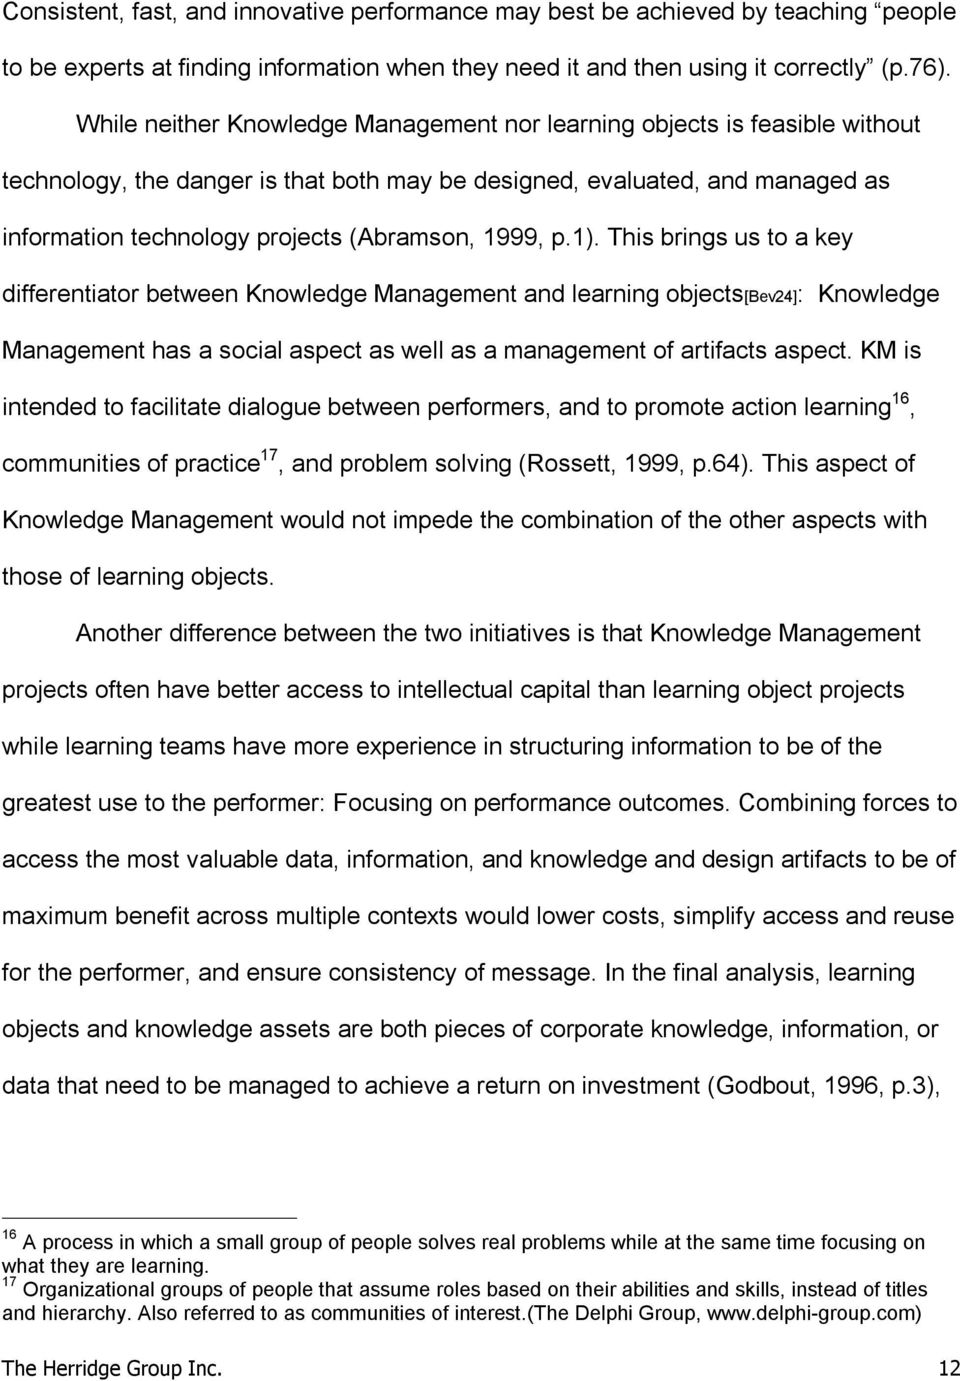 1999, p.1). This brings us to a key differentiator between Knowledge Management and learning objects[bev24]: Knowledge Management has a social aspect as well as a management of artifacts aspect.